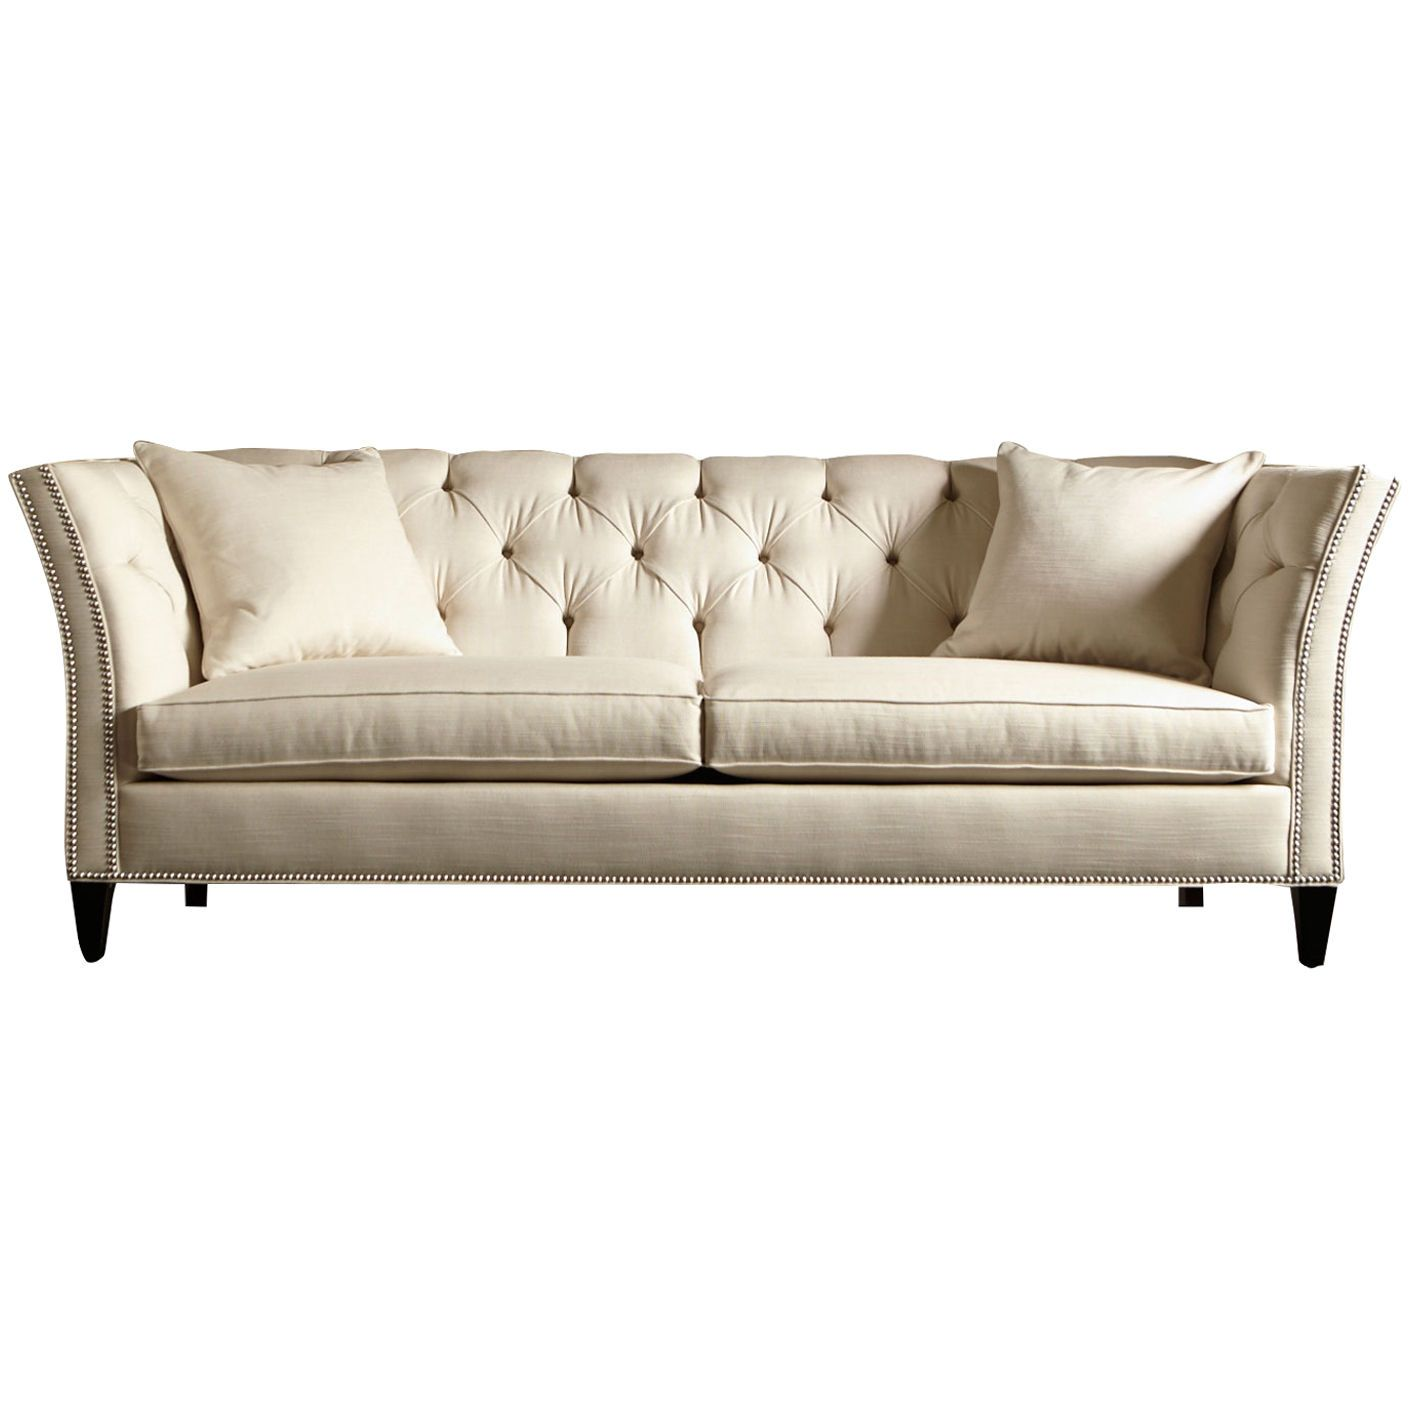 This Shelton Sofa (shown in Springer/White) from Ethan Allen is ...